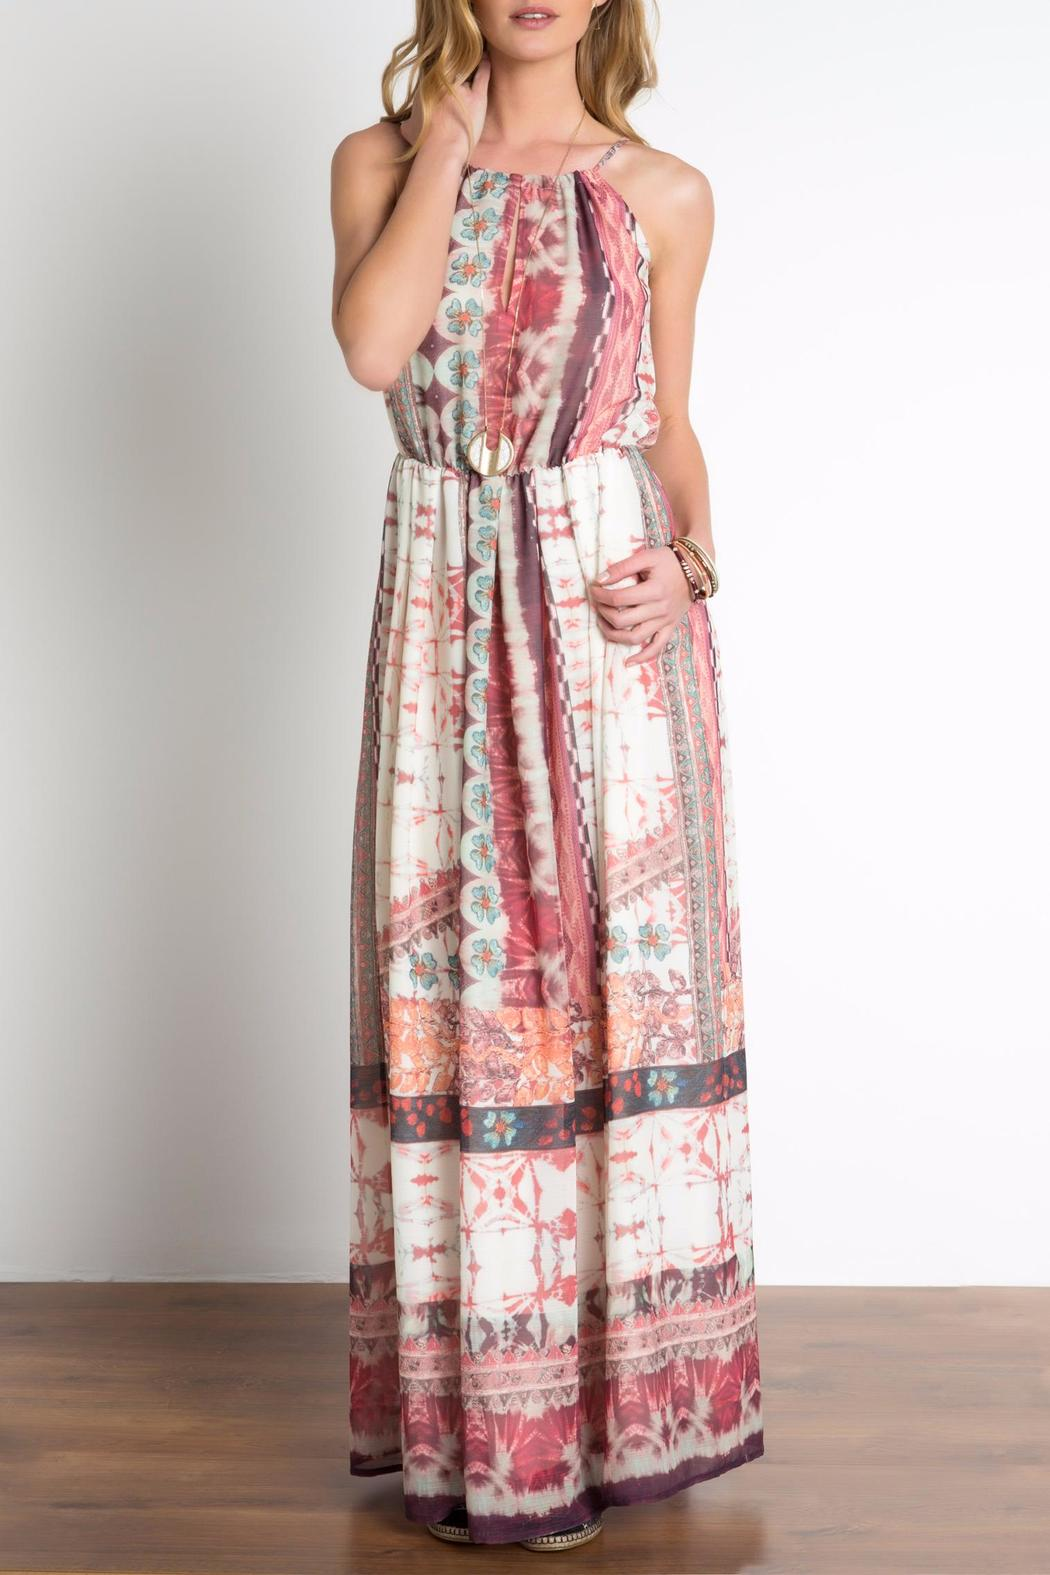 Urban Touch Ethnicprint Maxi Dress - Main Image